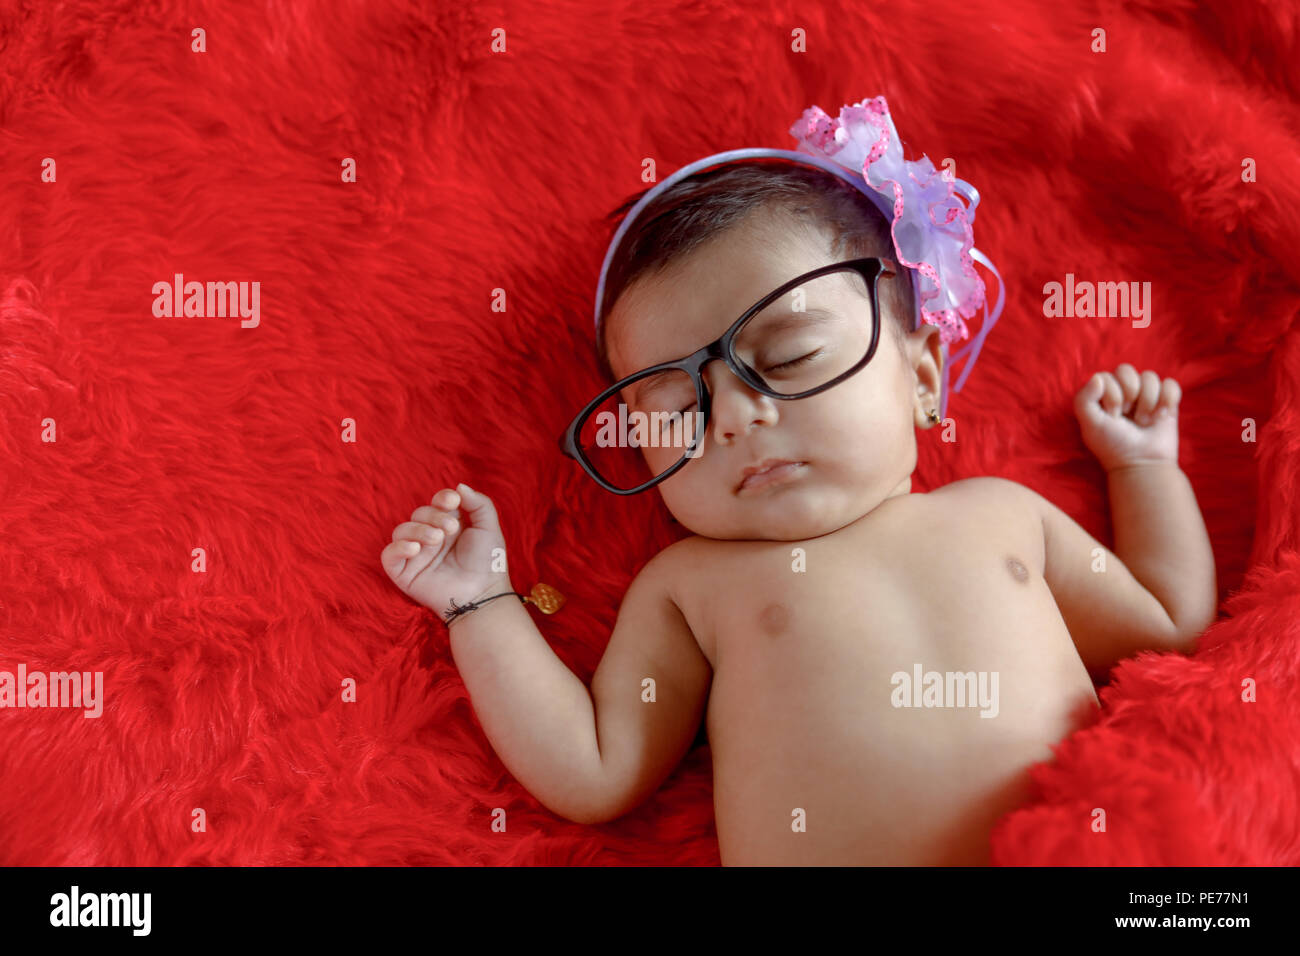 Newborn Indian Baby High Resolution Stock Photography And Images Alamy